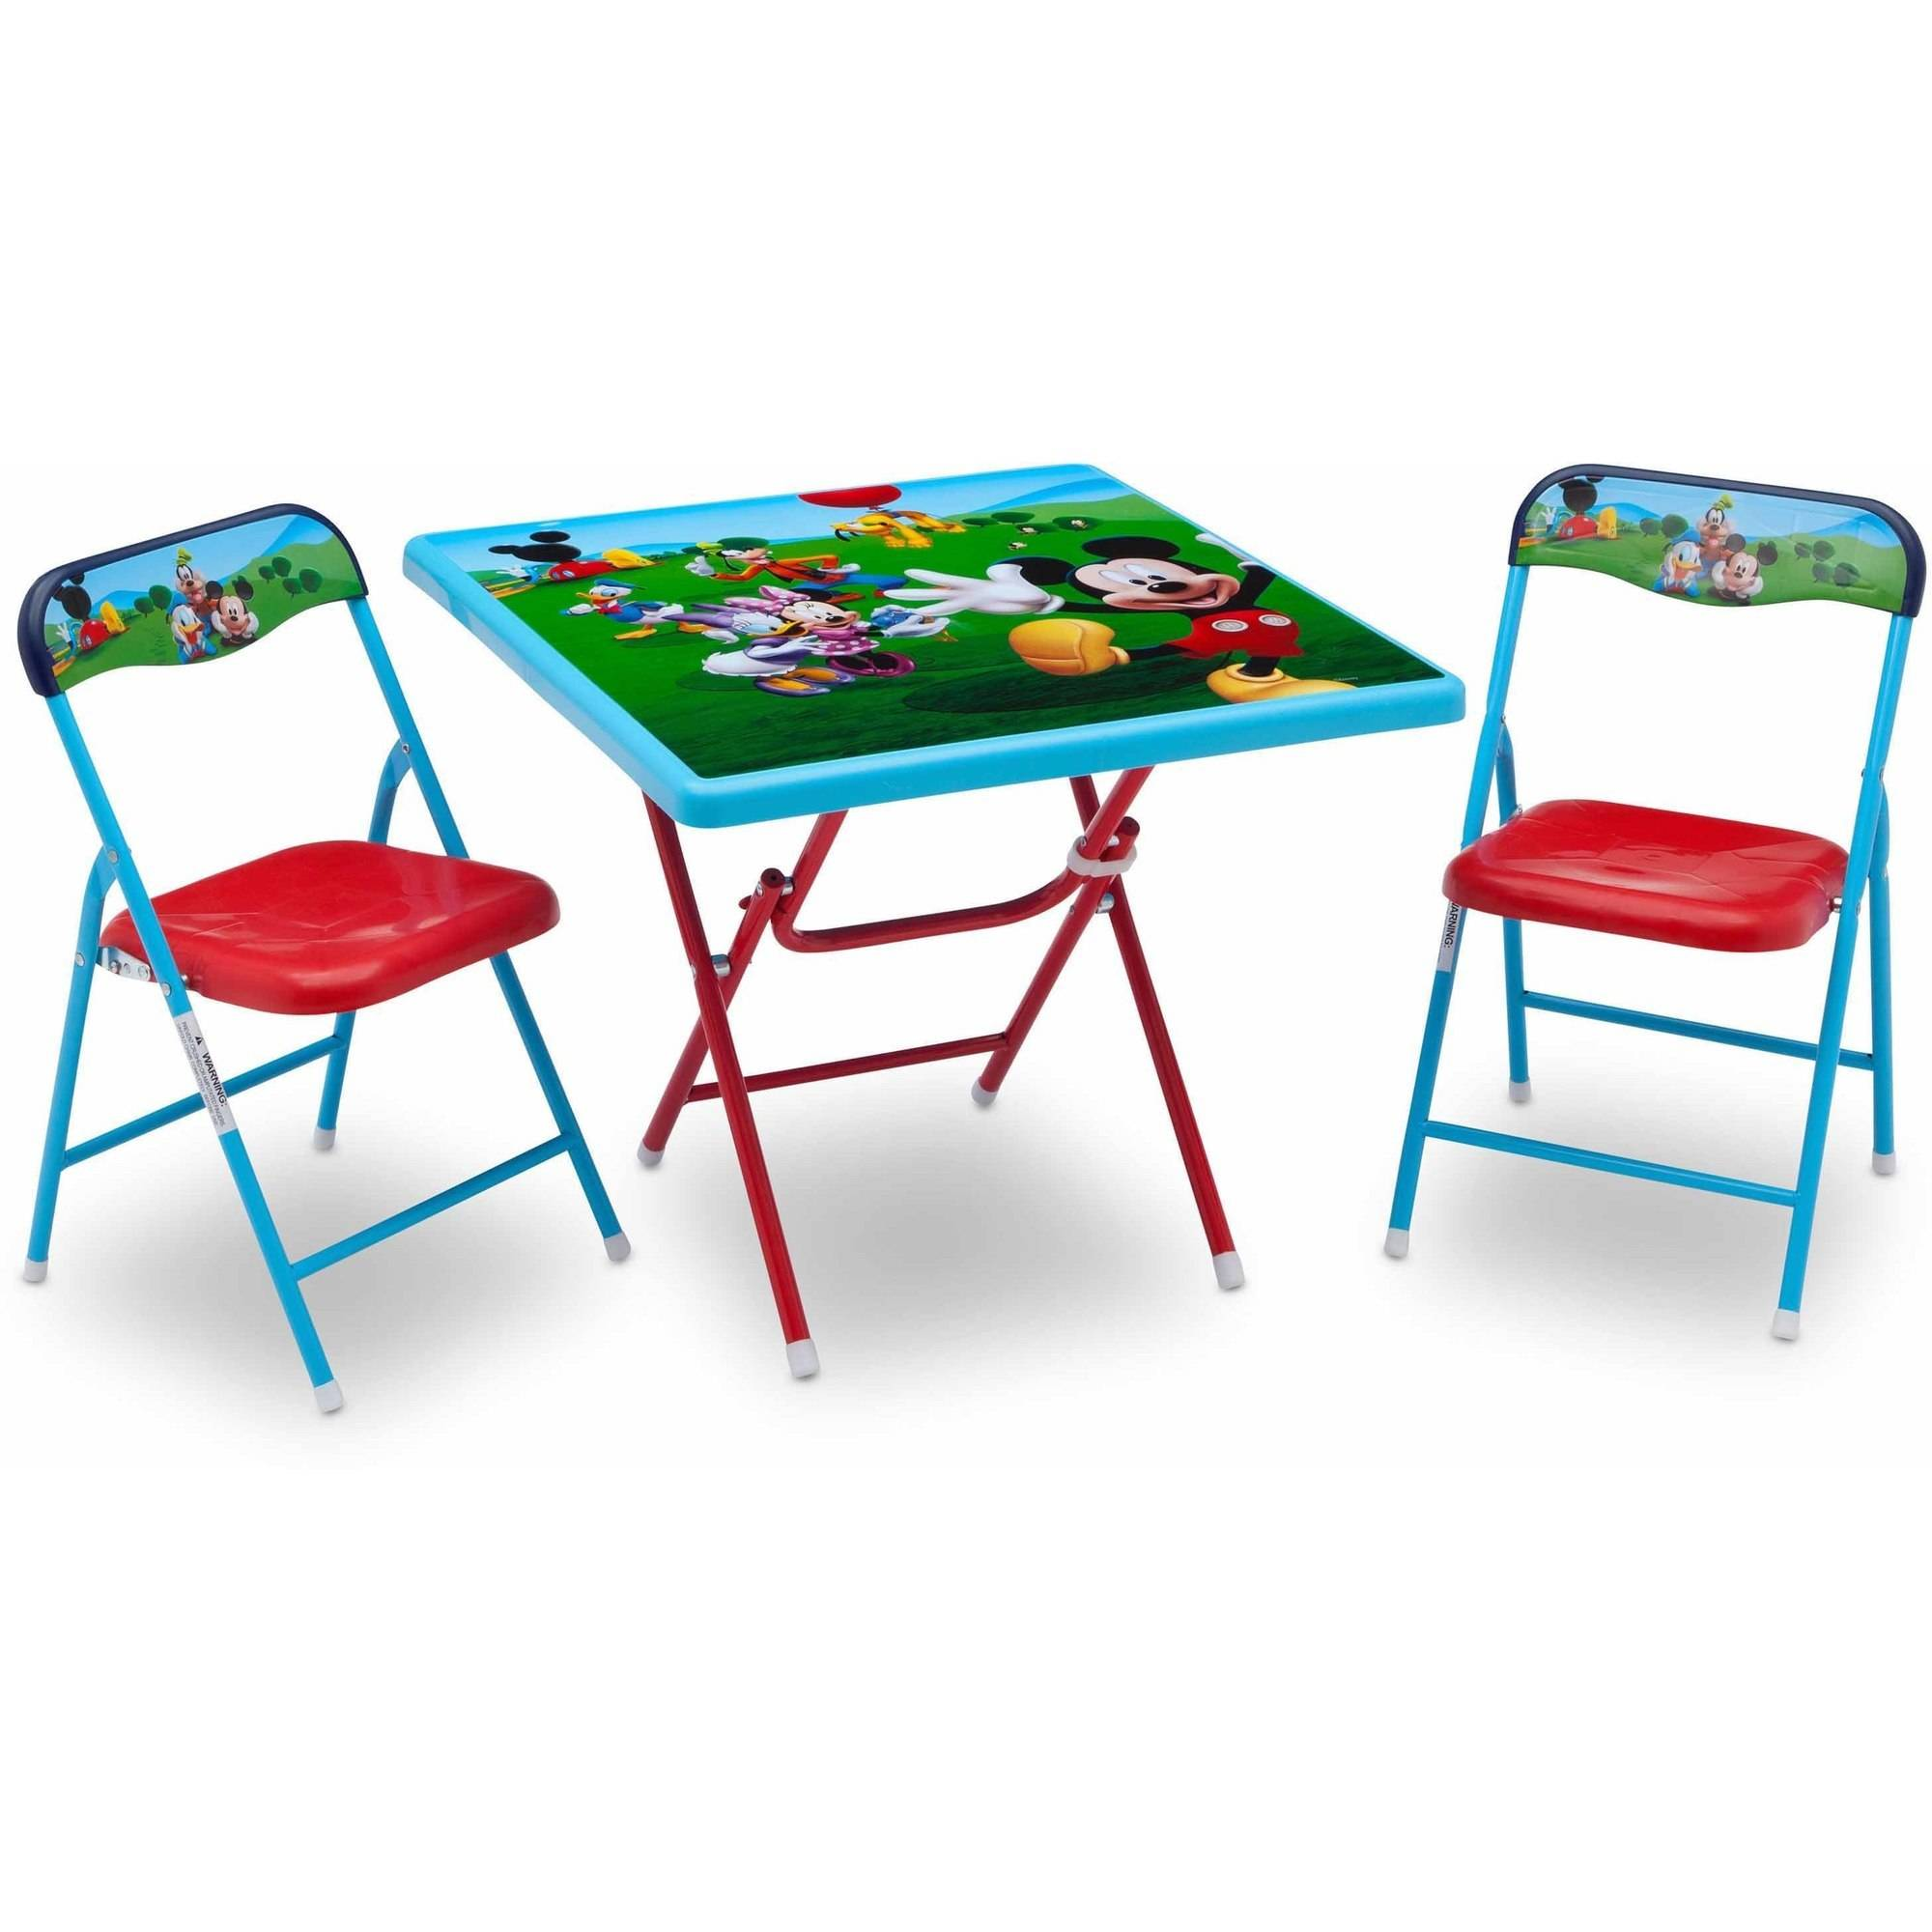 Merveilleux Disney Mickey Mouse Toddler Children Playroom Toy Organizer, Table And Chair  Set